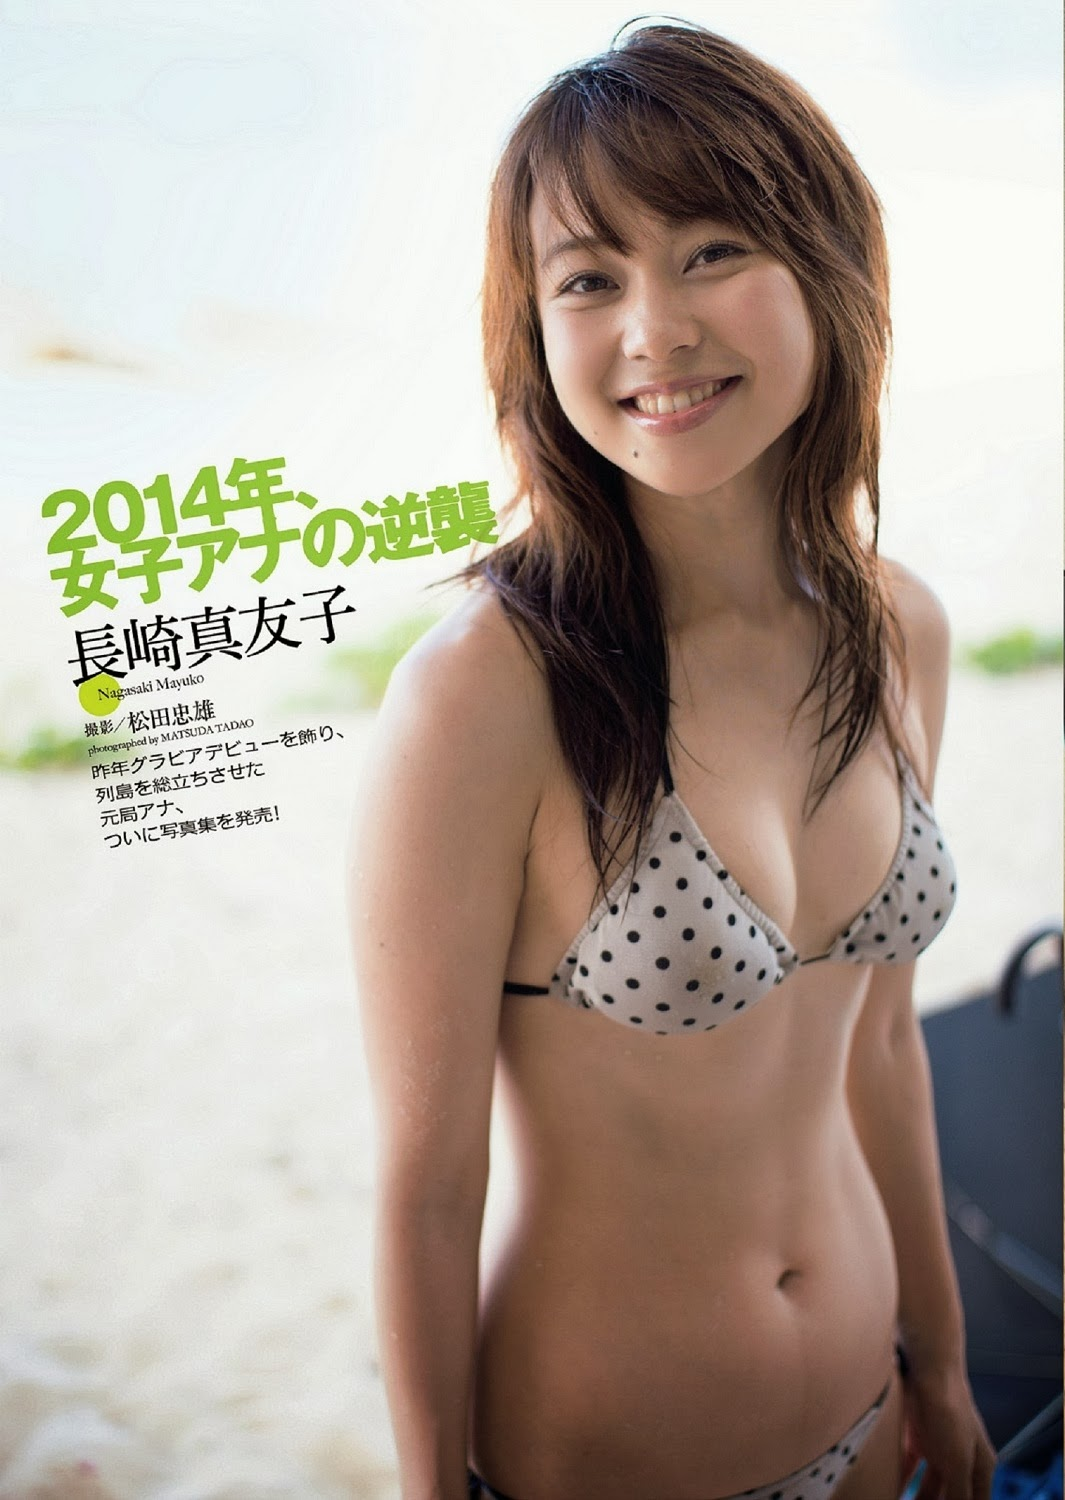 Nagasaki Mayuko 長崎真友子 Weekly Playboy Feb 2014 Photos